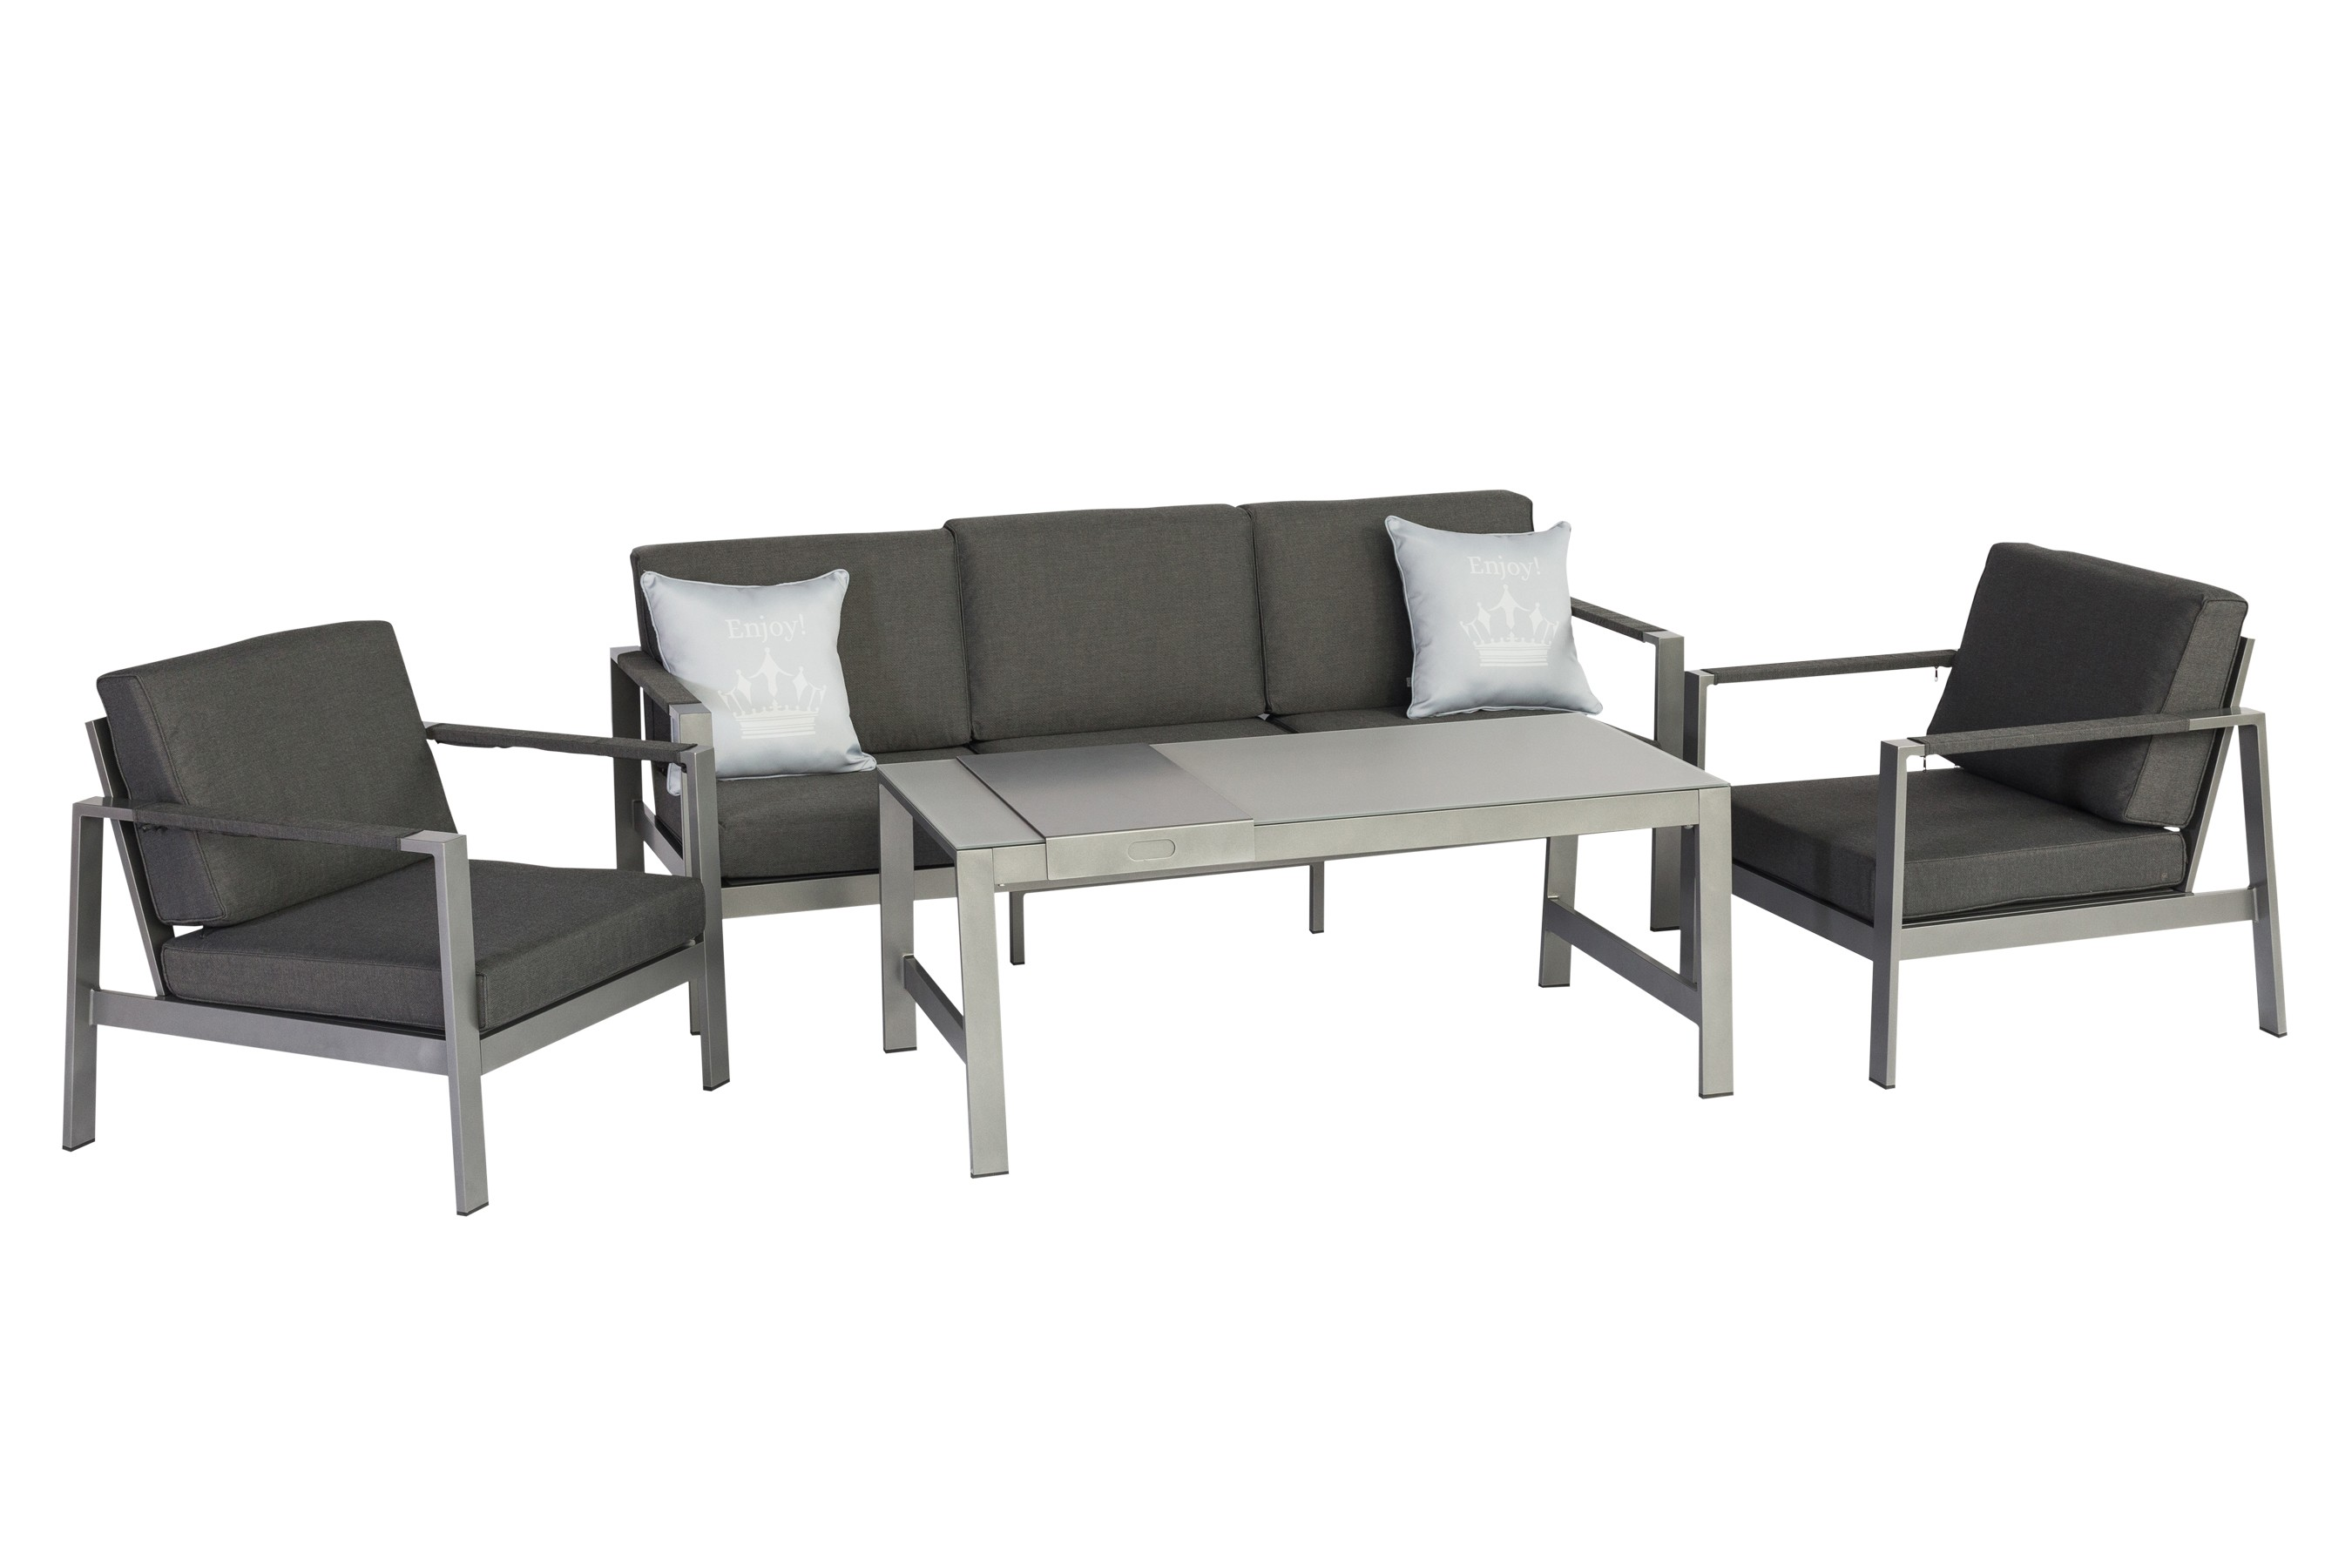 gartenm bel lounge set negrito alu graphit 7 teilig bei. Black Bedroom Furniture Sets. Home Design Ideas